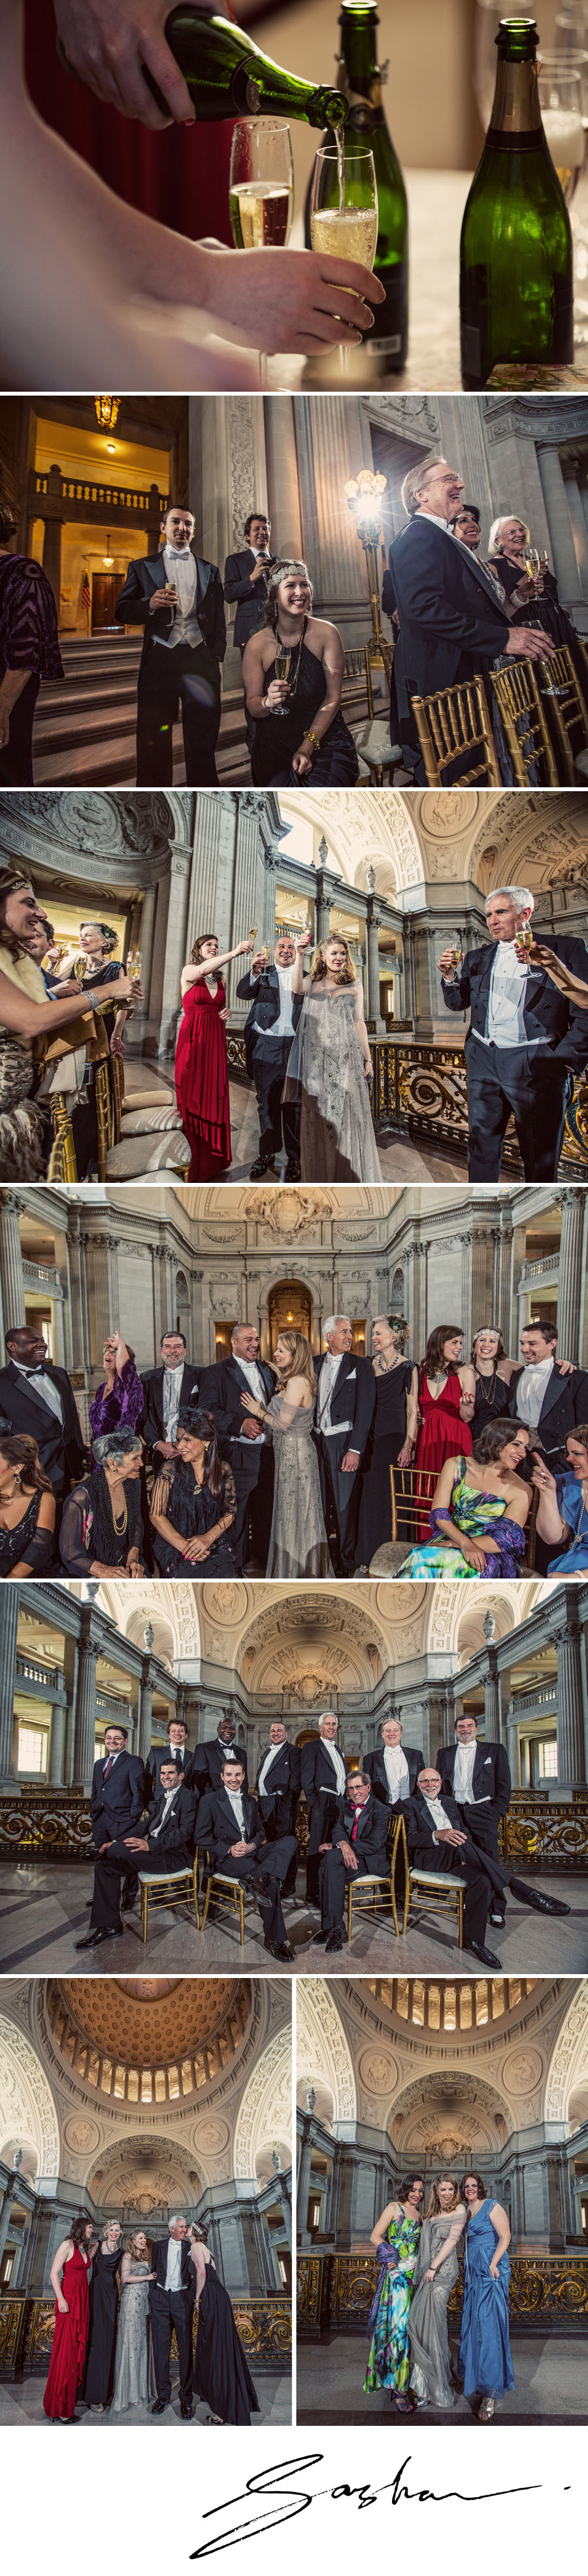 San Francisco City Hall Mayor's Balcony Wedding photos